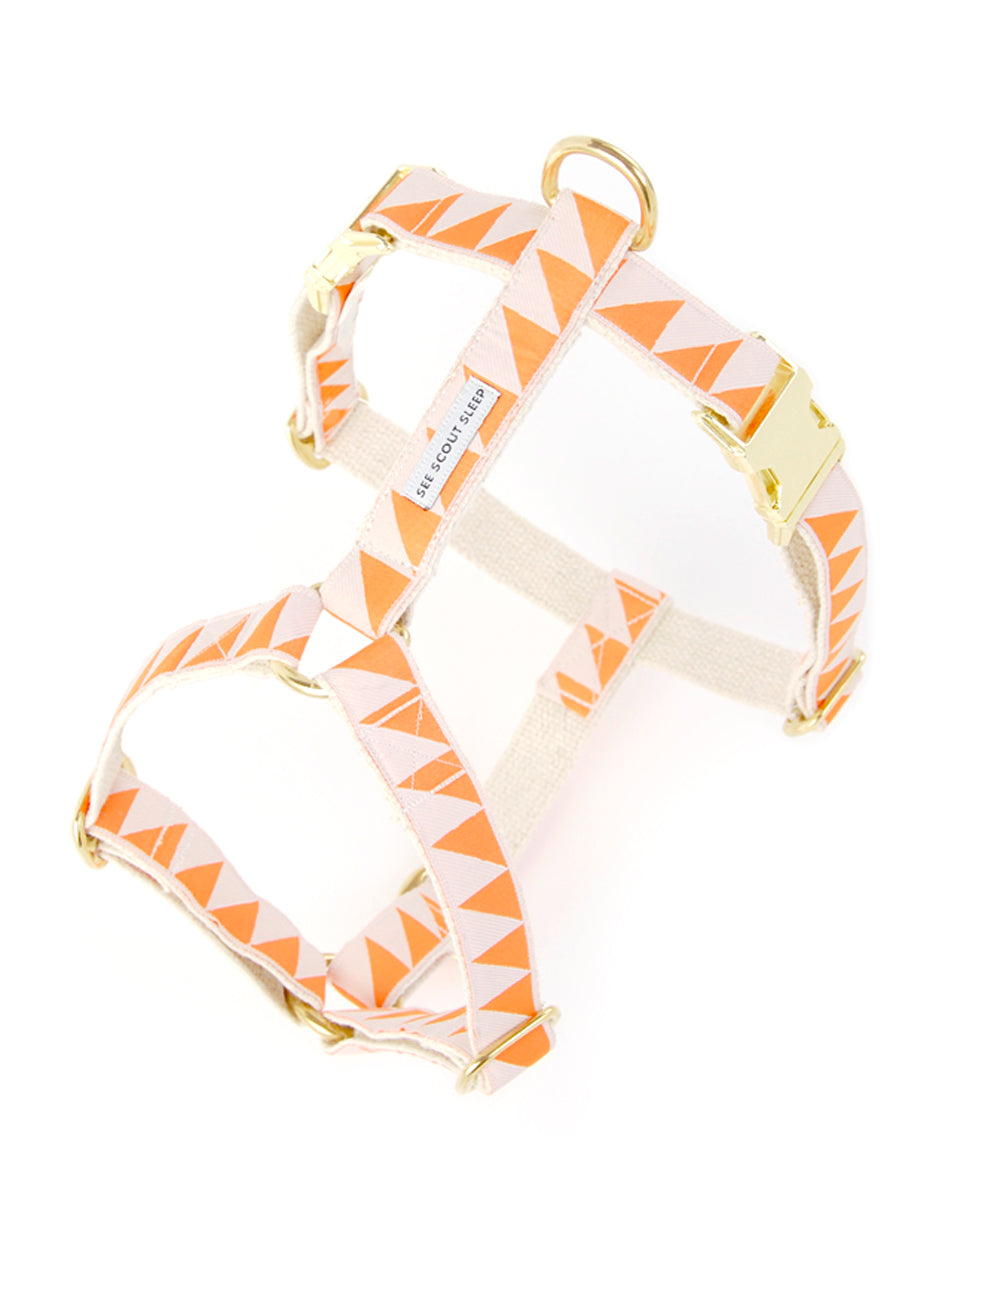 Nice Grill Harness | Tangerine & Cream